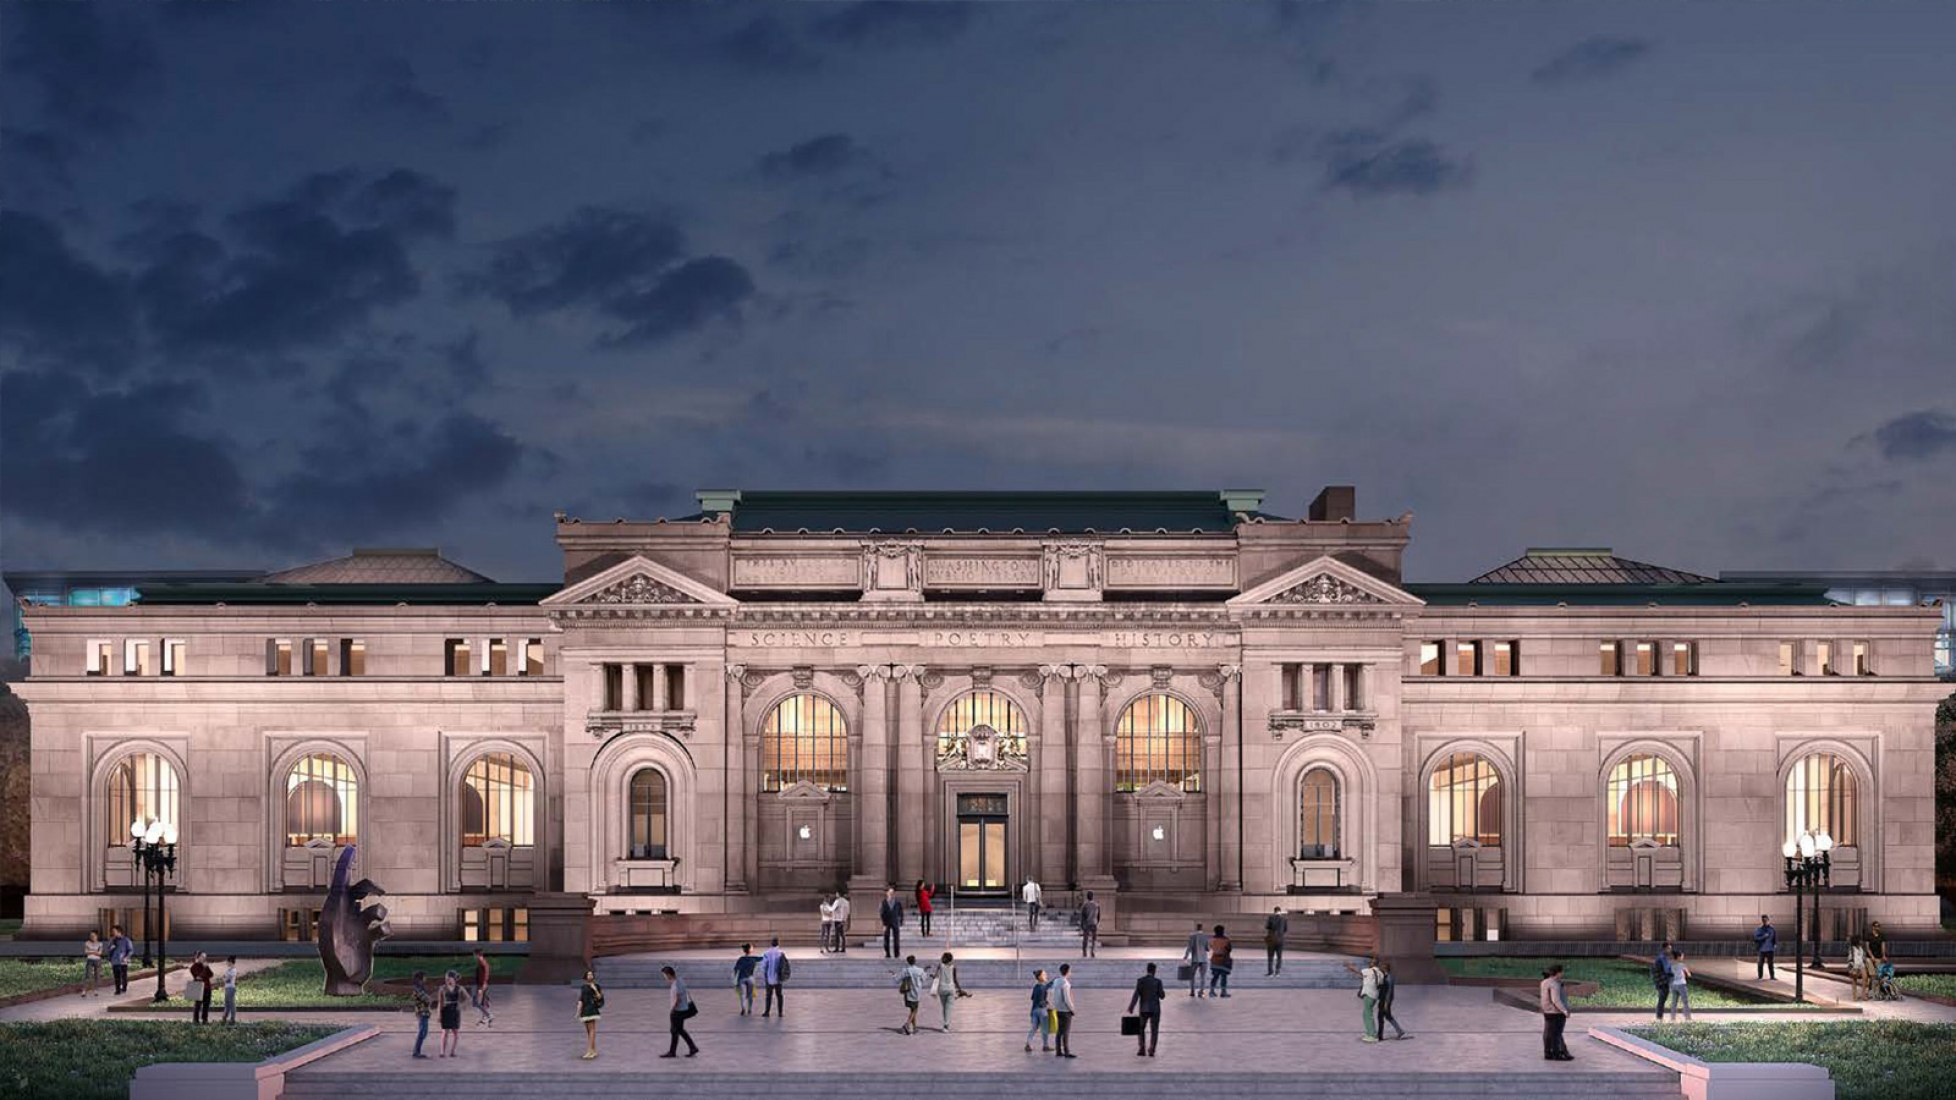 Foster-designed Apple store proposed for historic Carnegie Library in DC